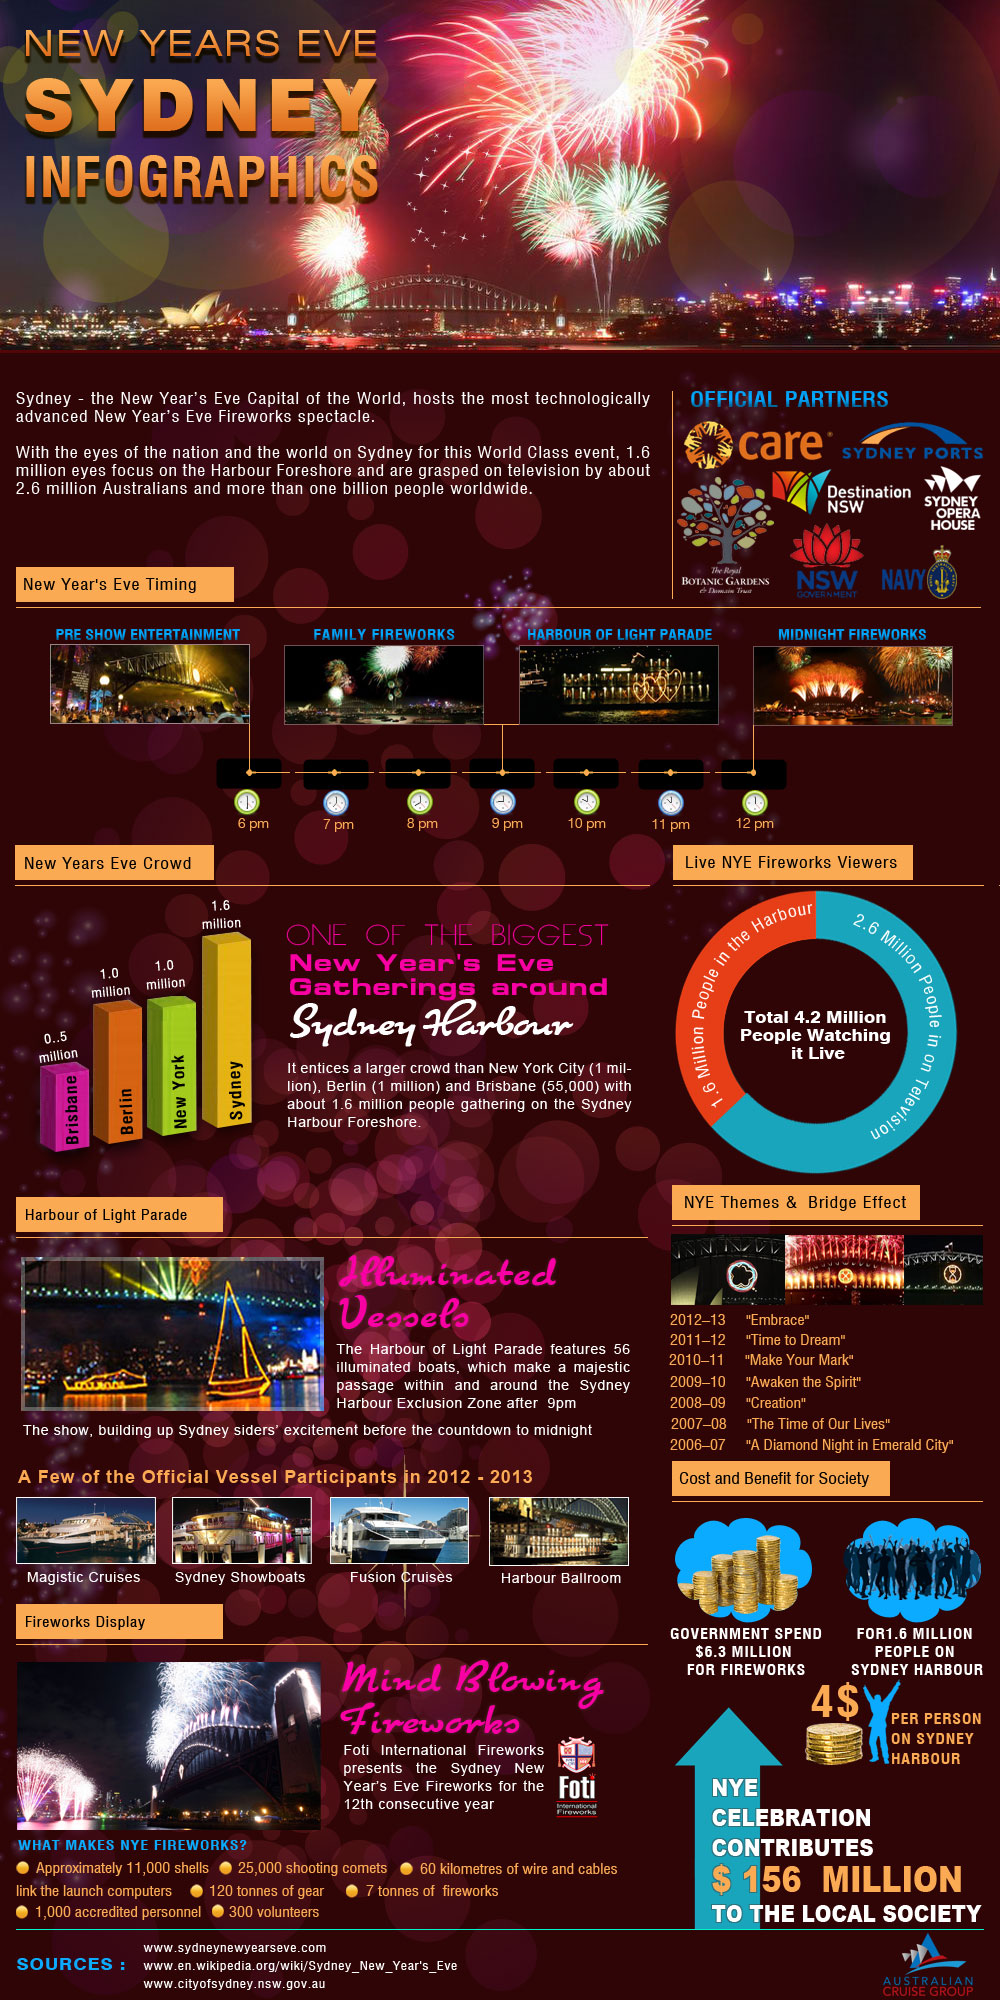 Infographics on Sydney New Year's Eve